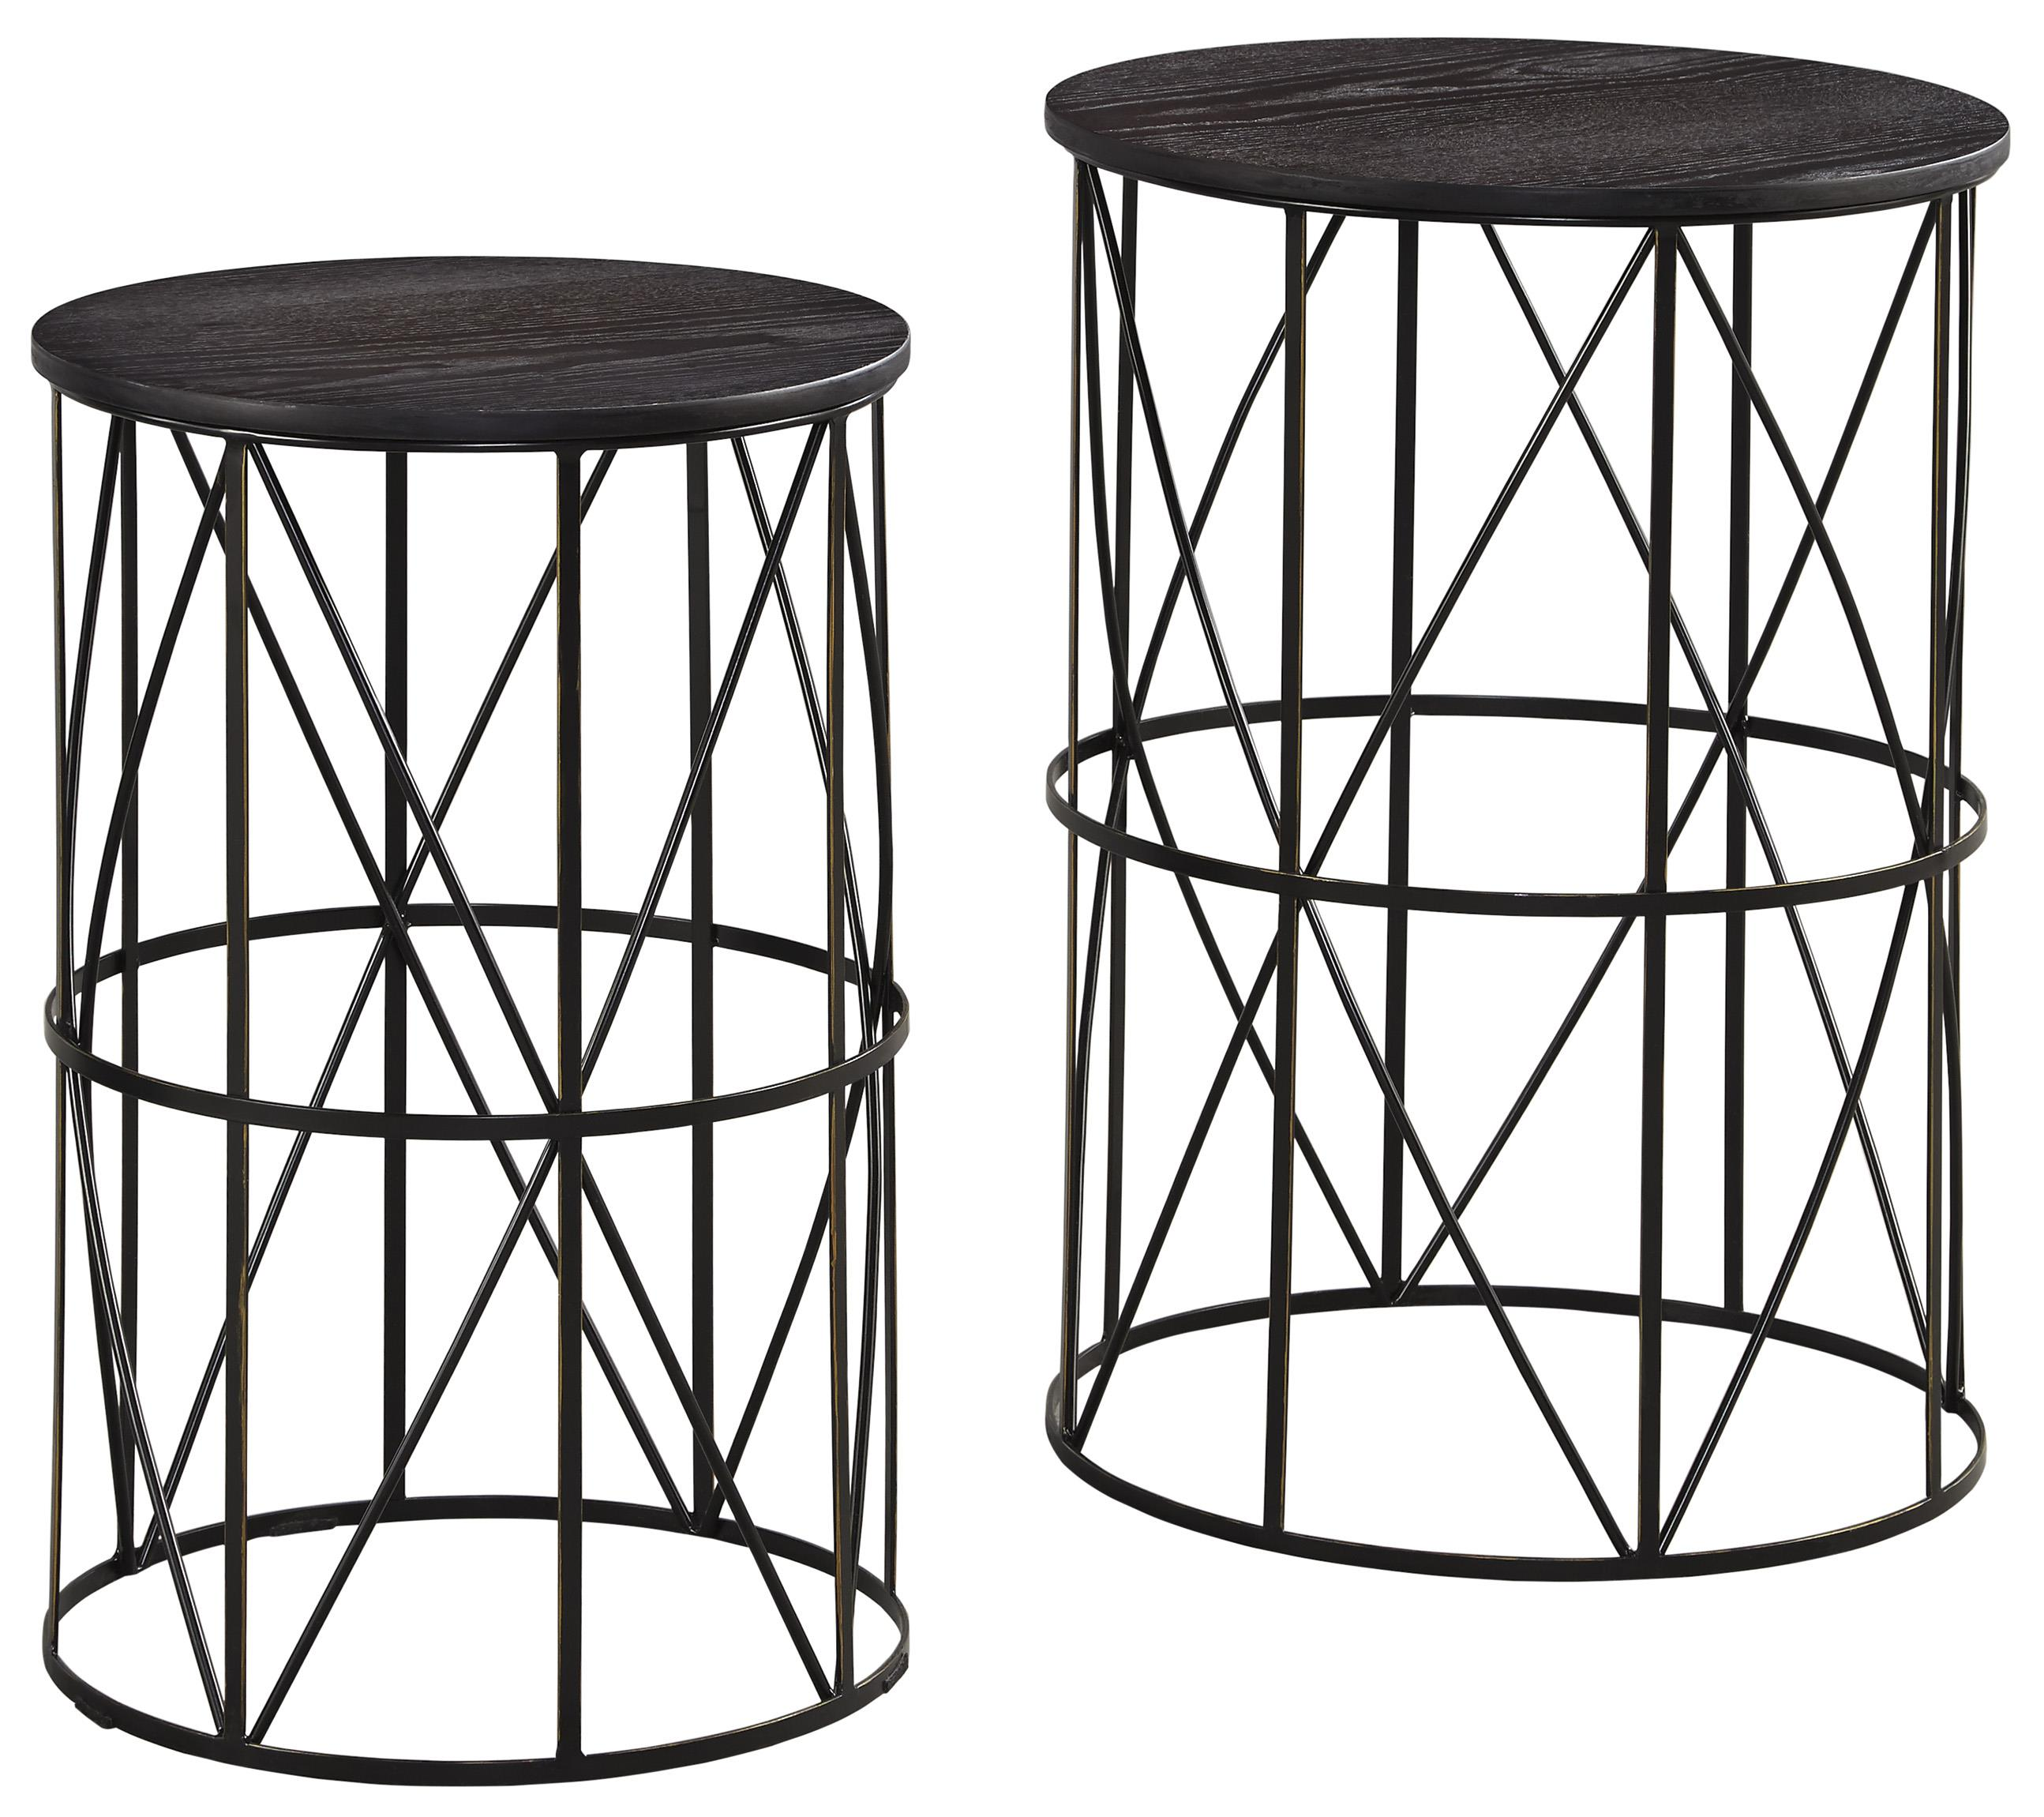 Charmant Black Finish Wire Metal Nesting End Tables With Espresso Finish Wood Tops